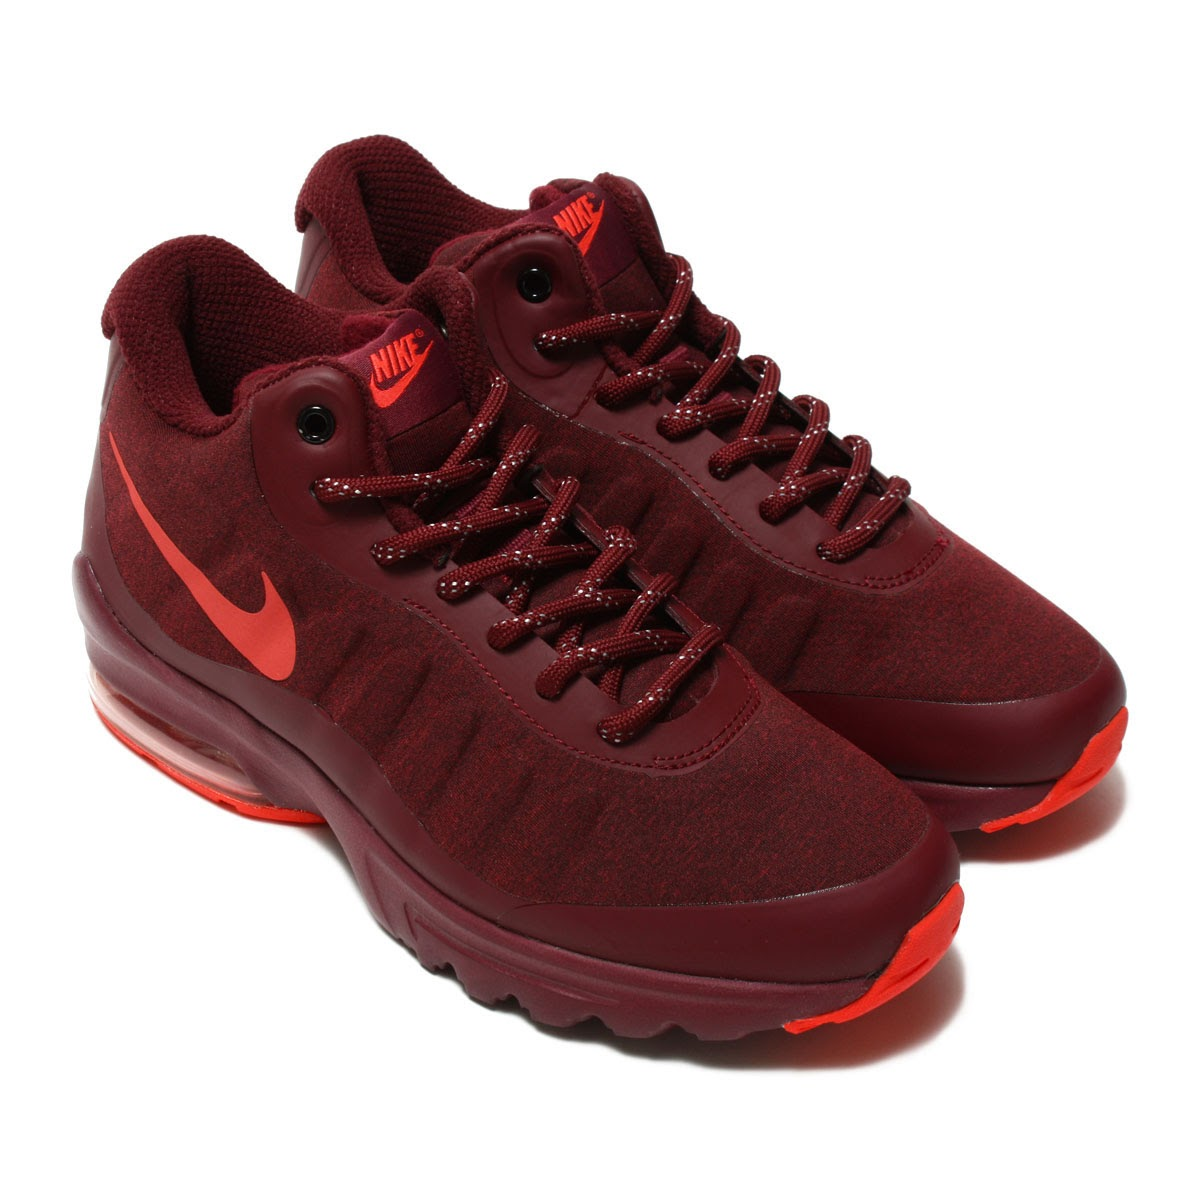 3cc4c0723781 Nike Mens Air Max Invigor Mid Low Top Lace Up Running Sneaker ...